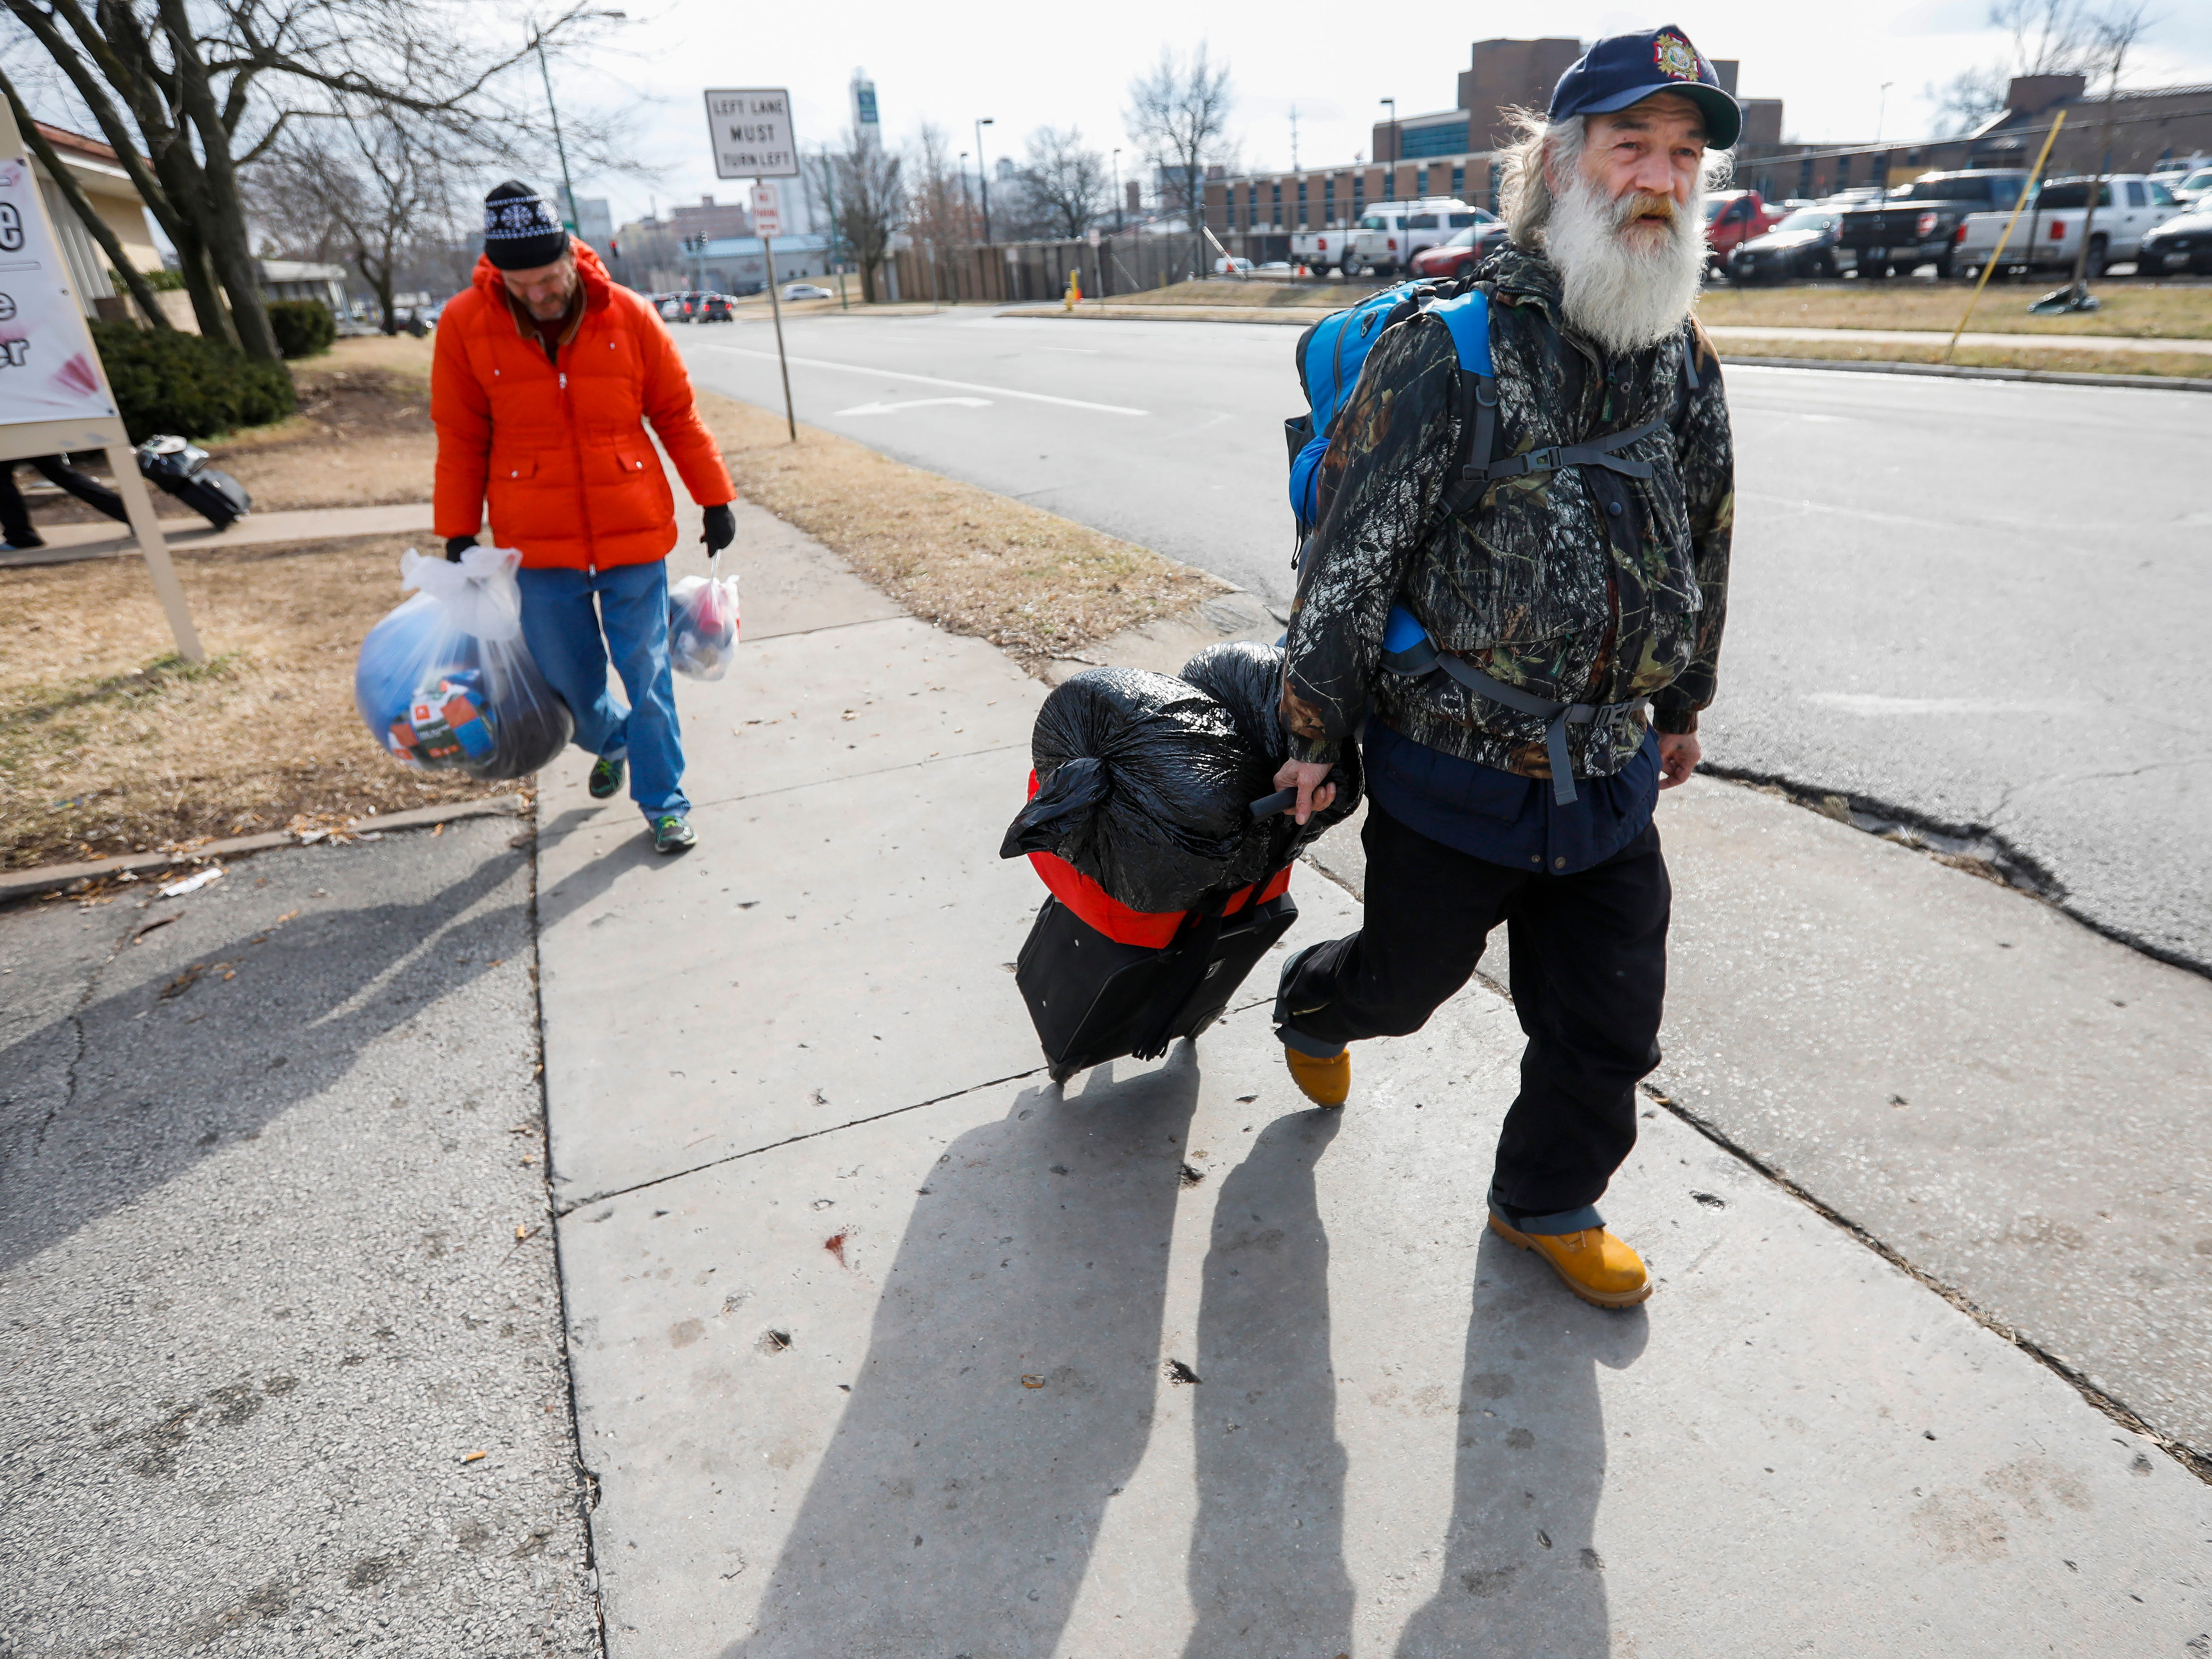 Gil Rife, right, who has been homeless for 3 years, and his friend Tommy (who didn't want to give his last name) leave the Veteran's Coming Home Center on Wednesday, Feb. 20, 2019.